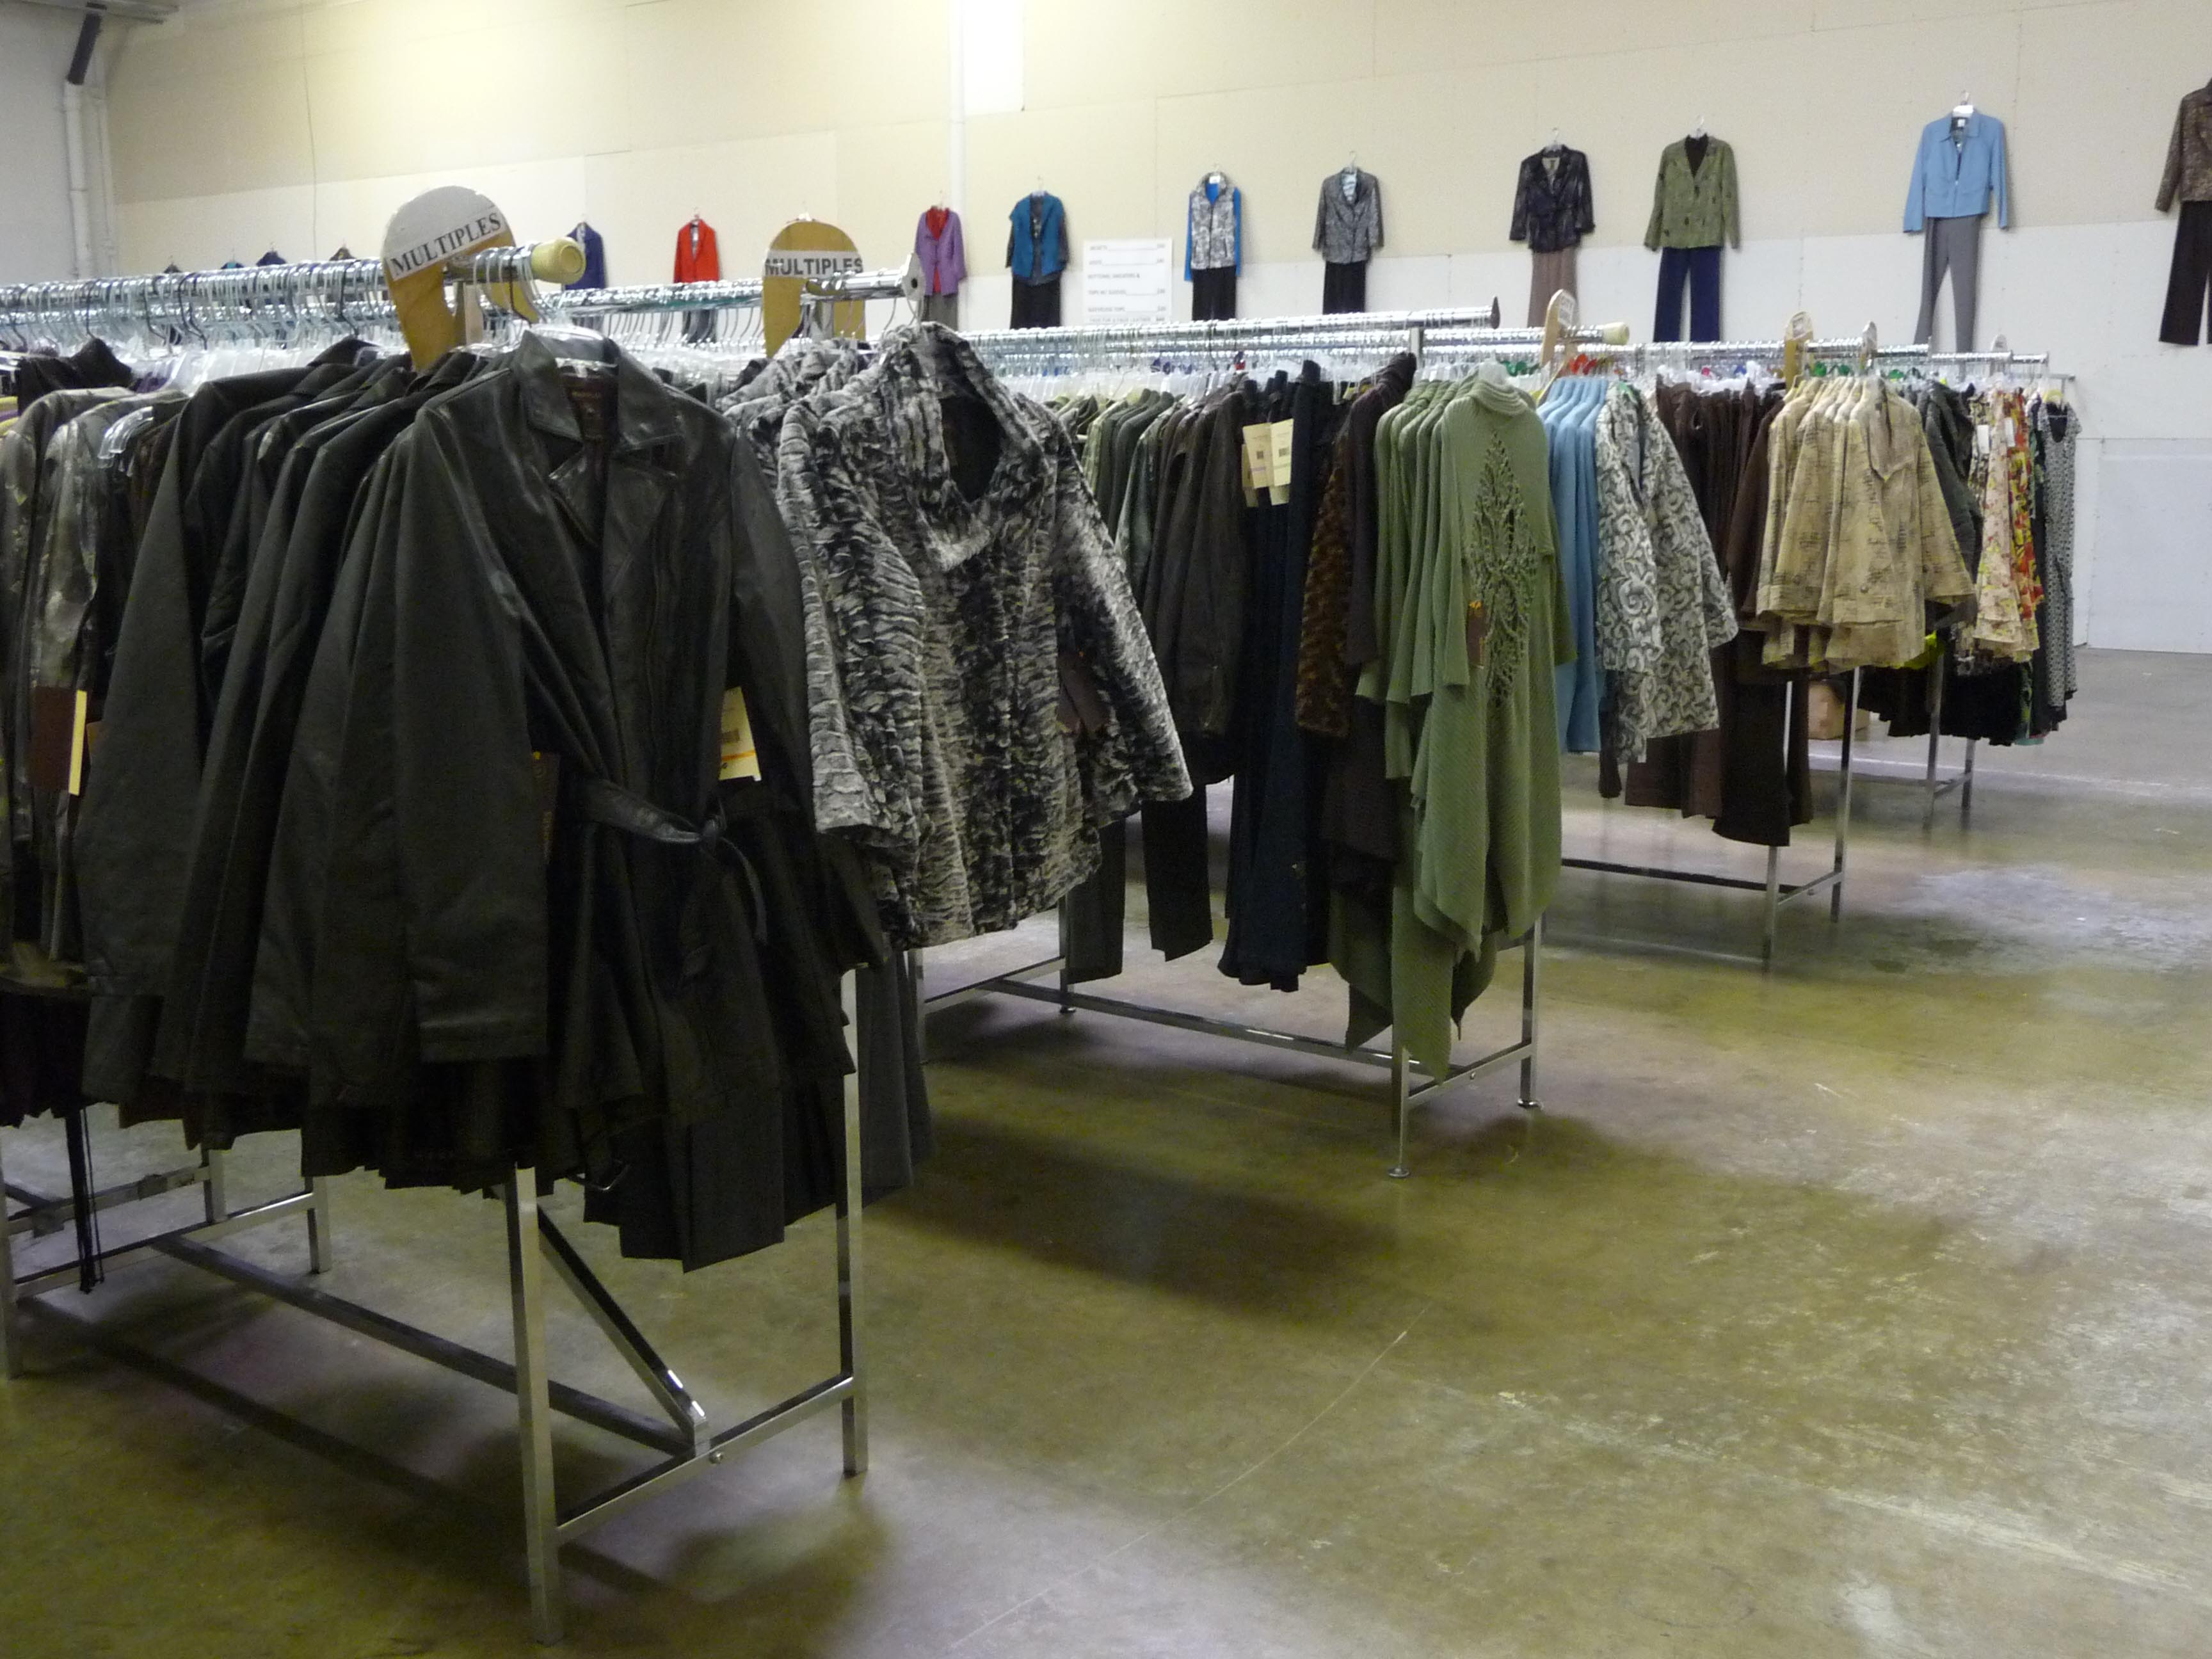 Sneak Preview Sharon Young Ladies Brand Designer Clothes Warehouse Sale Reminder Starts This Thursday February 10th Frugal In Fort Worth Blog Coupon Savings Personal Budget Tips Cheap Dfw Deals